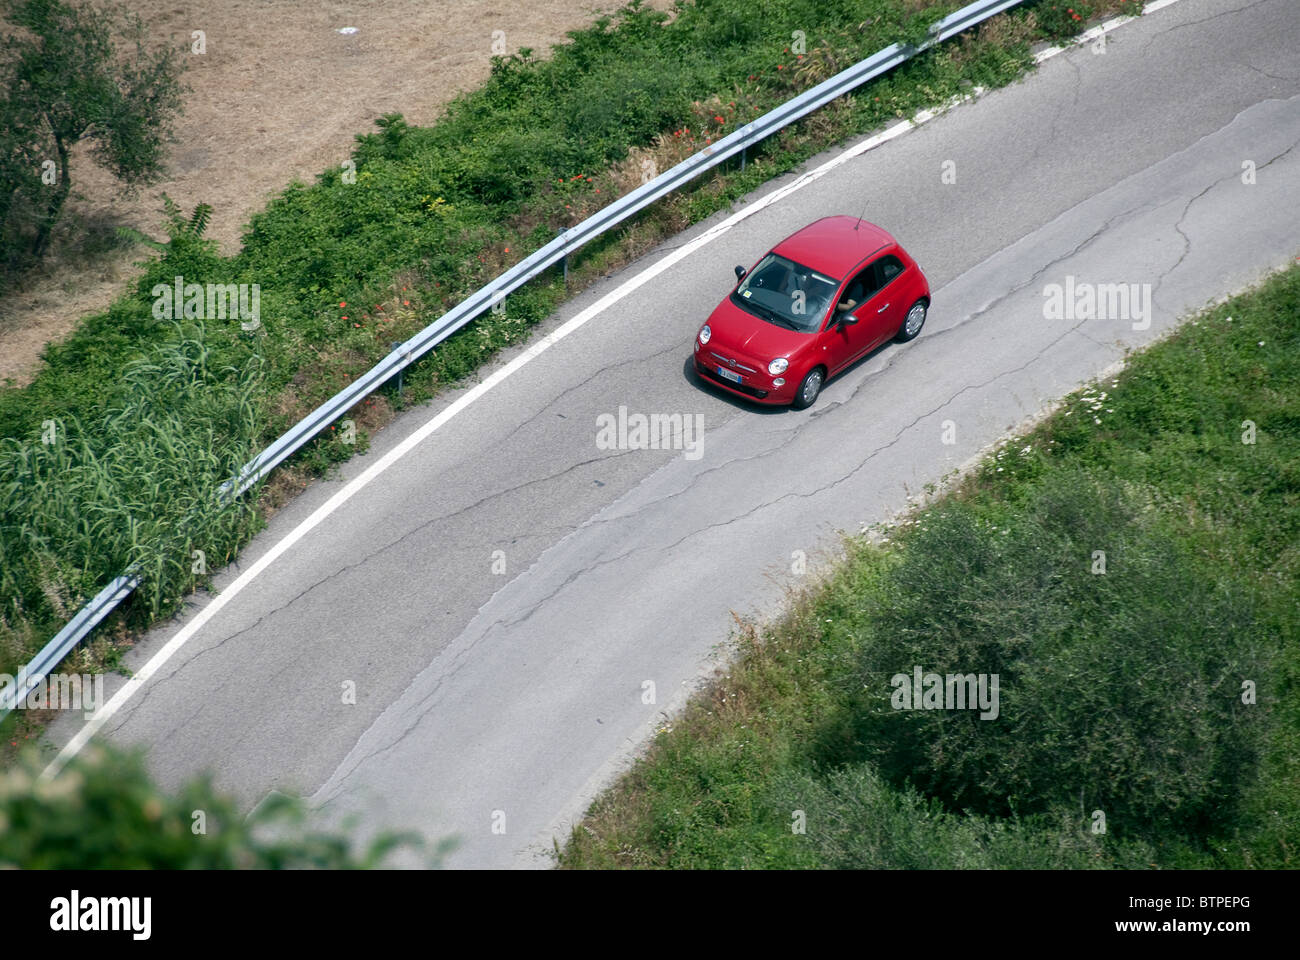 Small red Fiat 500 (model launched 2008) viewed from above on a road in Italy but could be anywhere. Man's arm - Stock Image